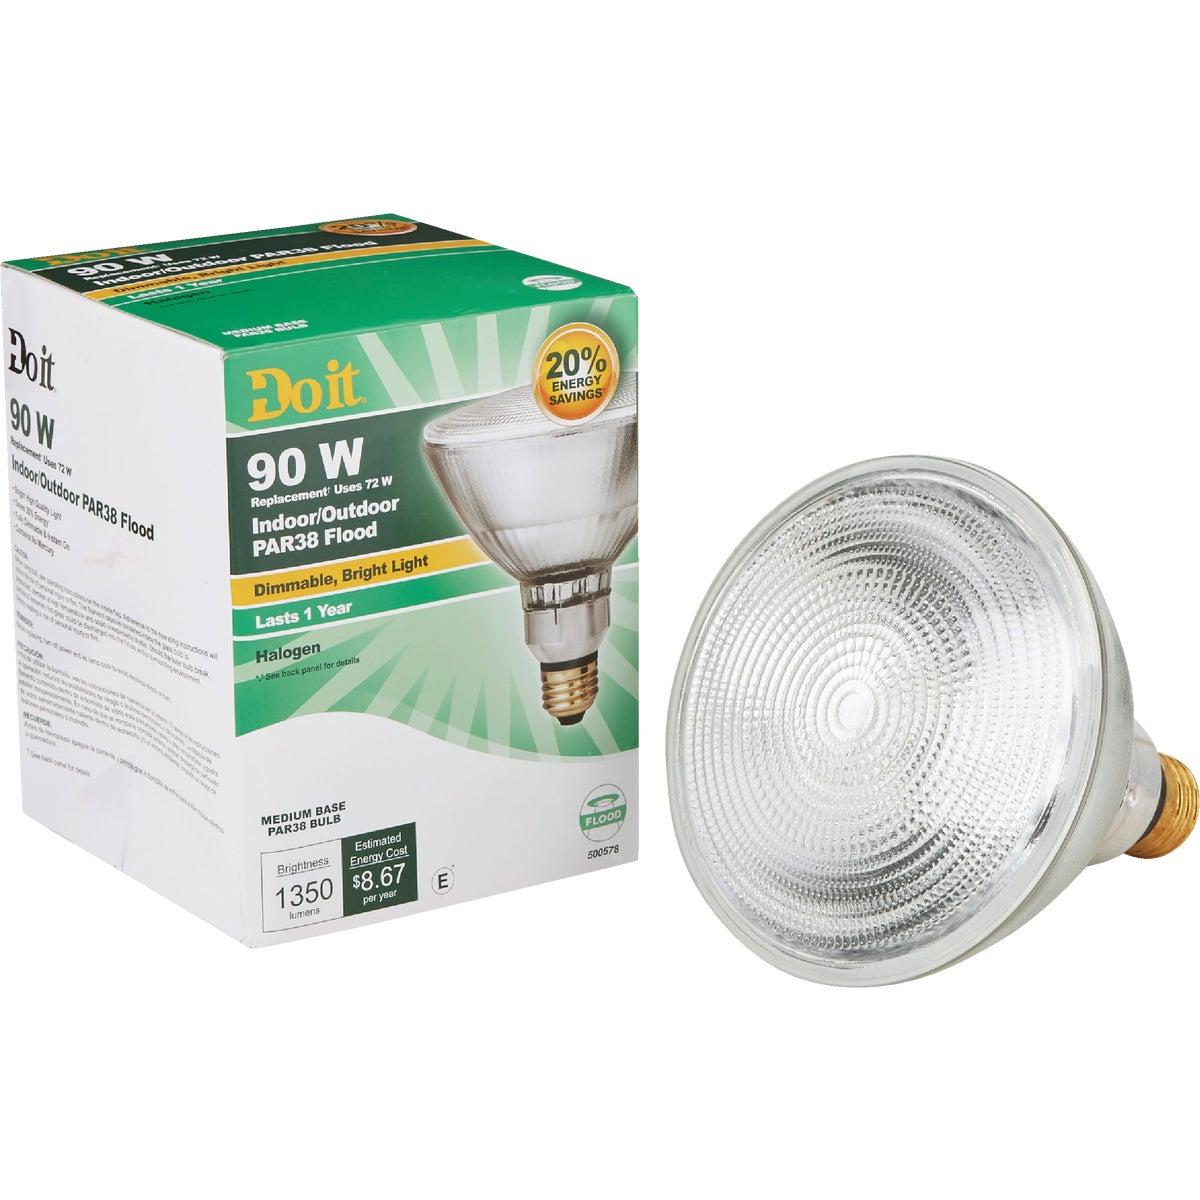 90W PAR38 FLOOD BULB - 90833 by G E Private Label